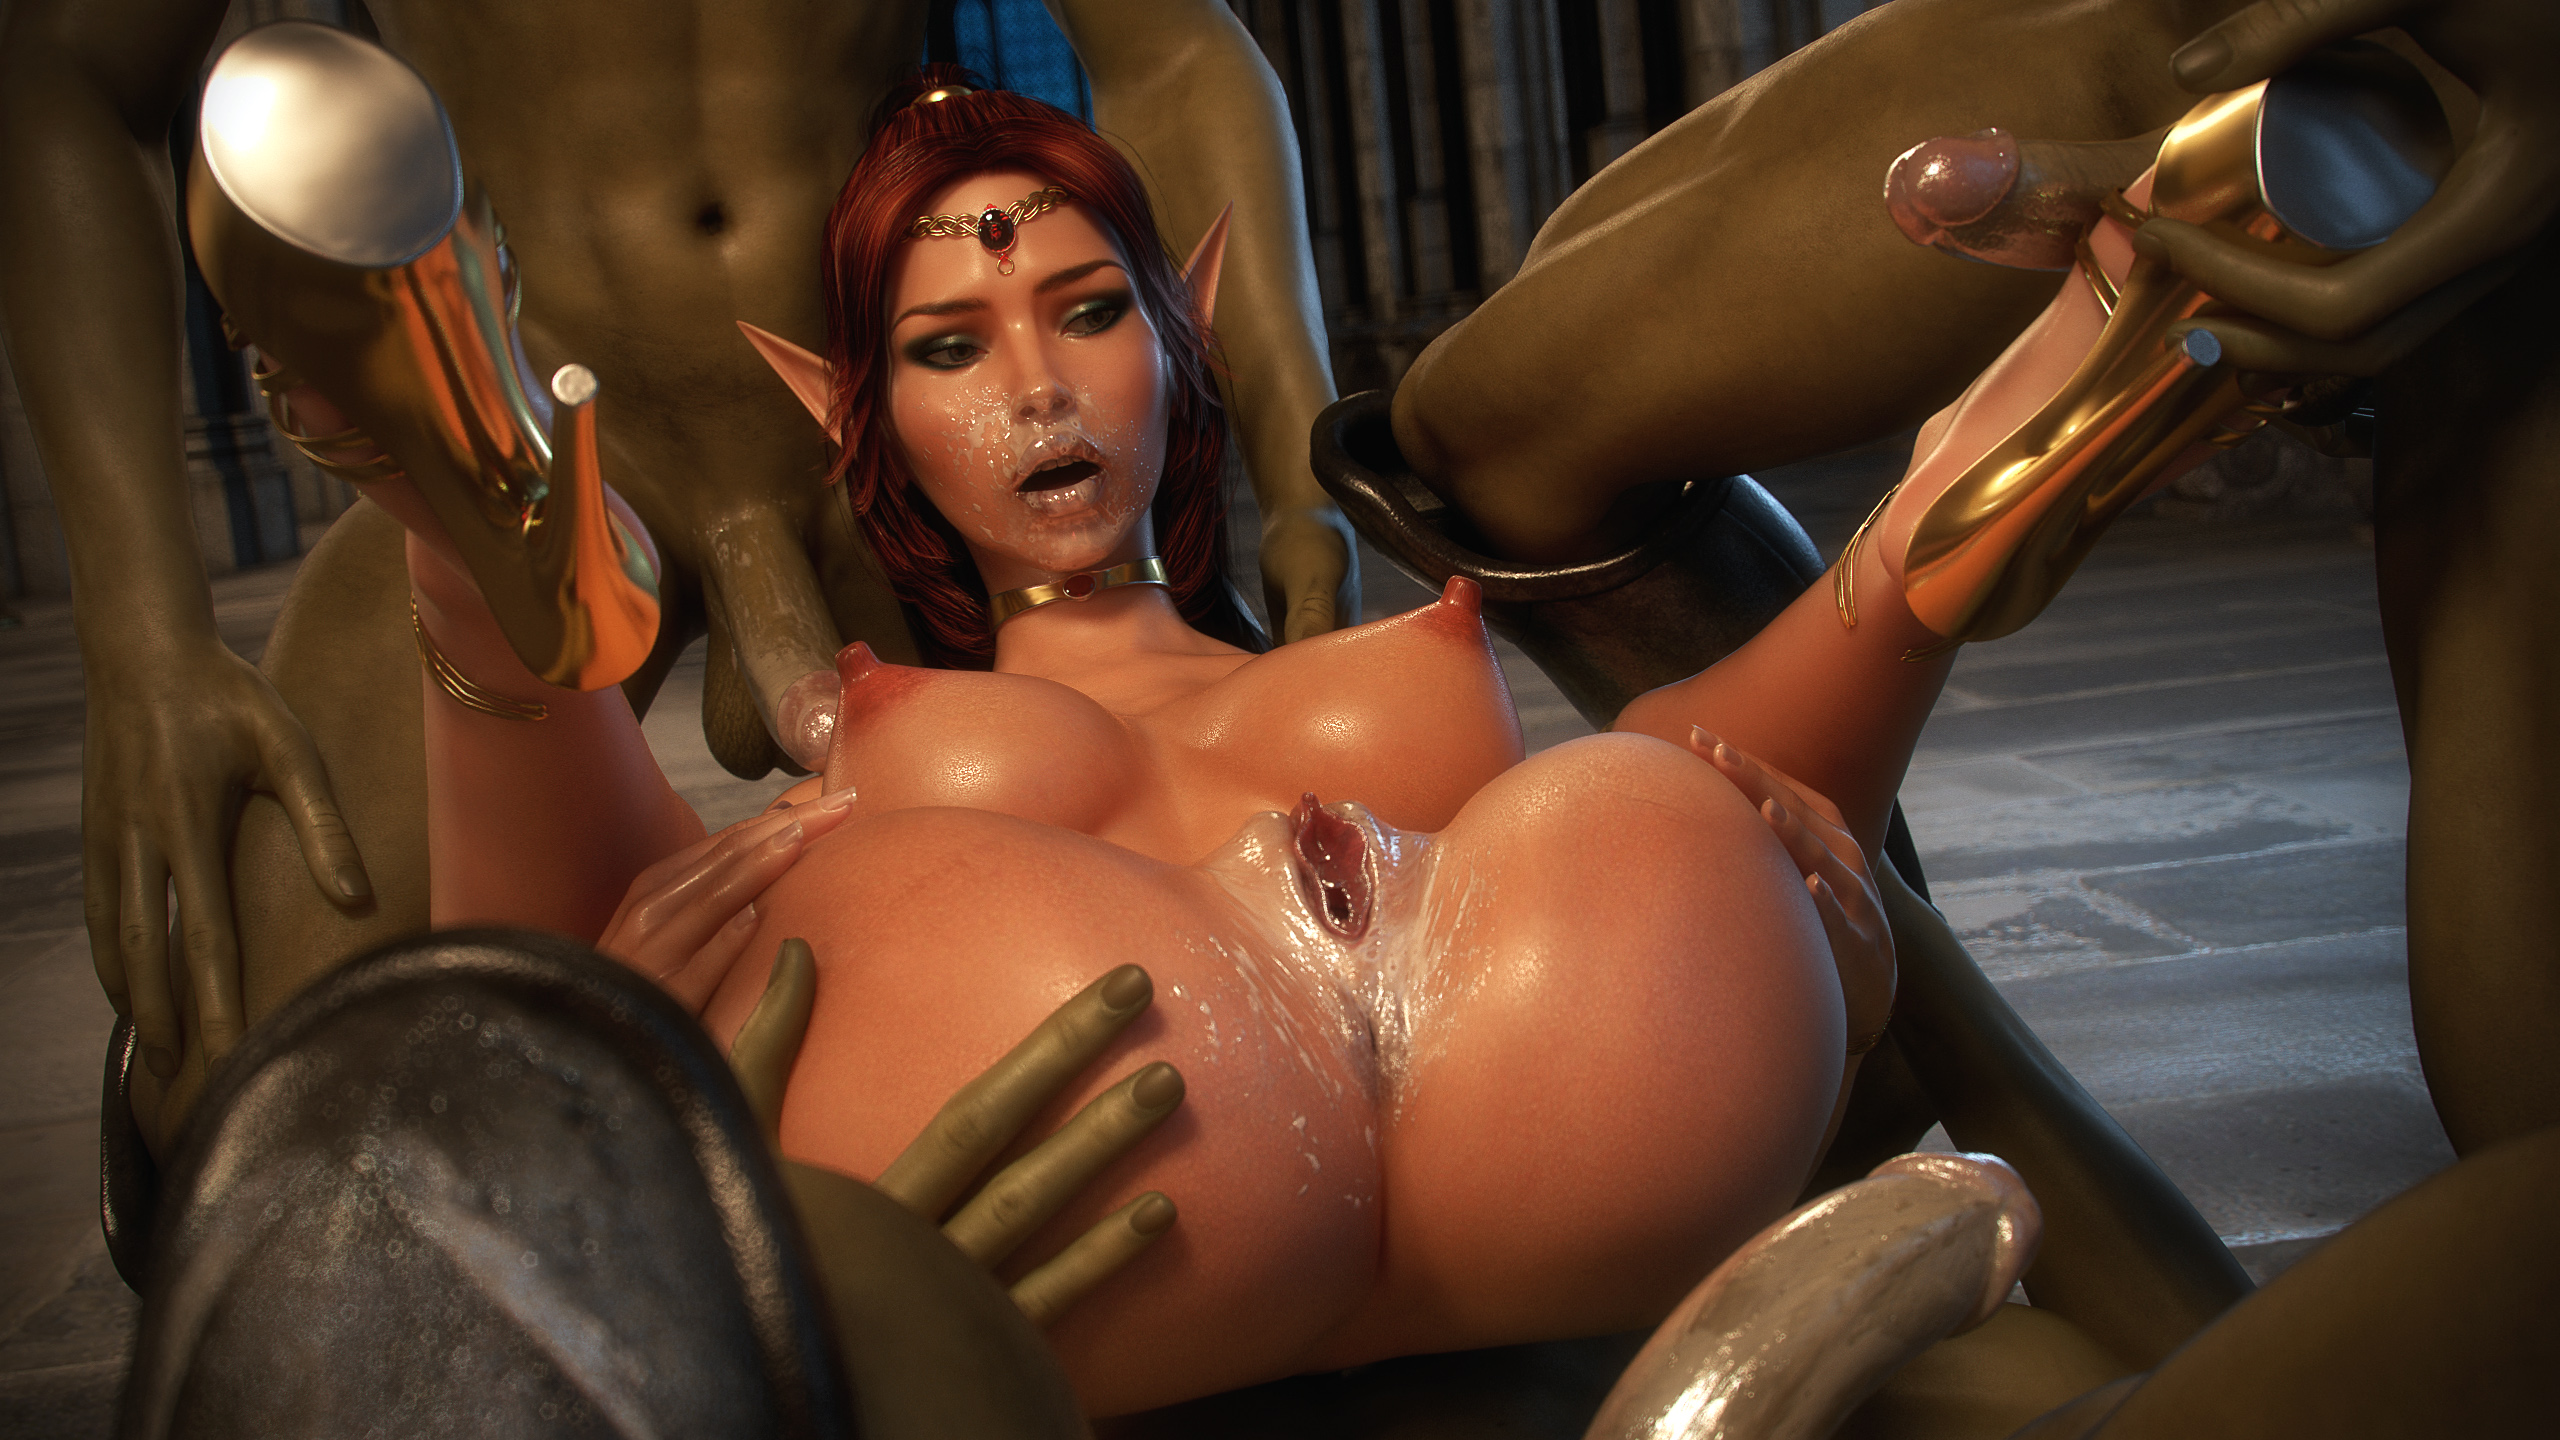 Elf with big dick hentai gallery